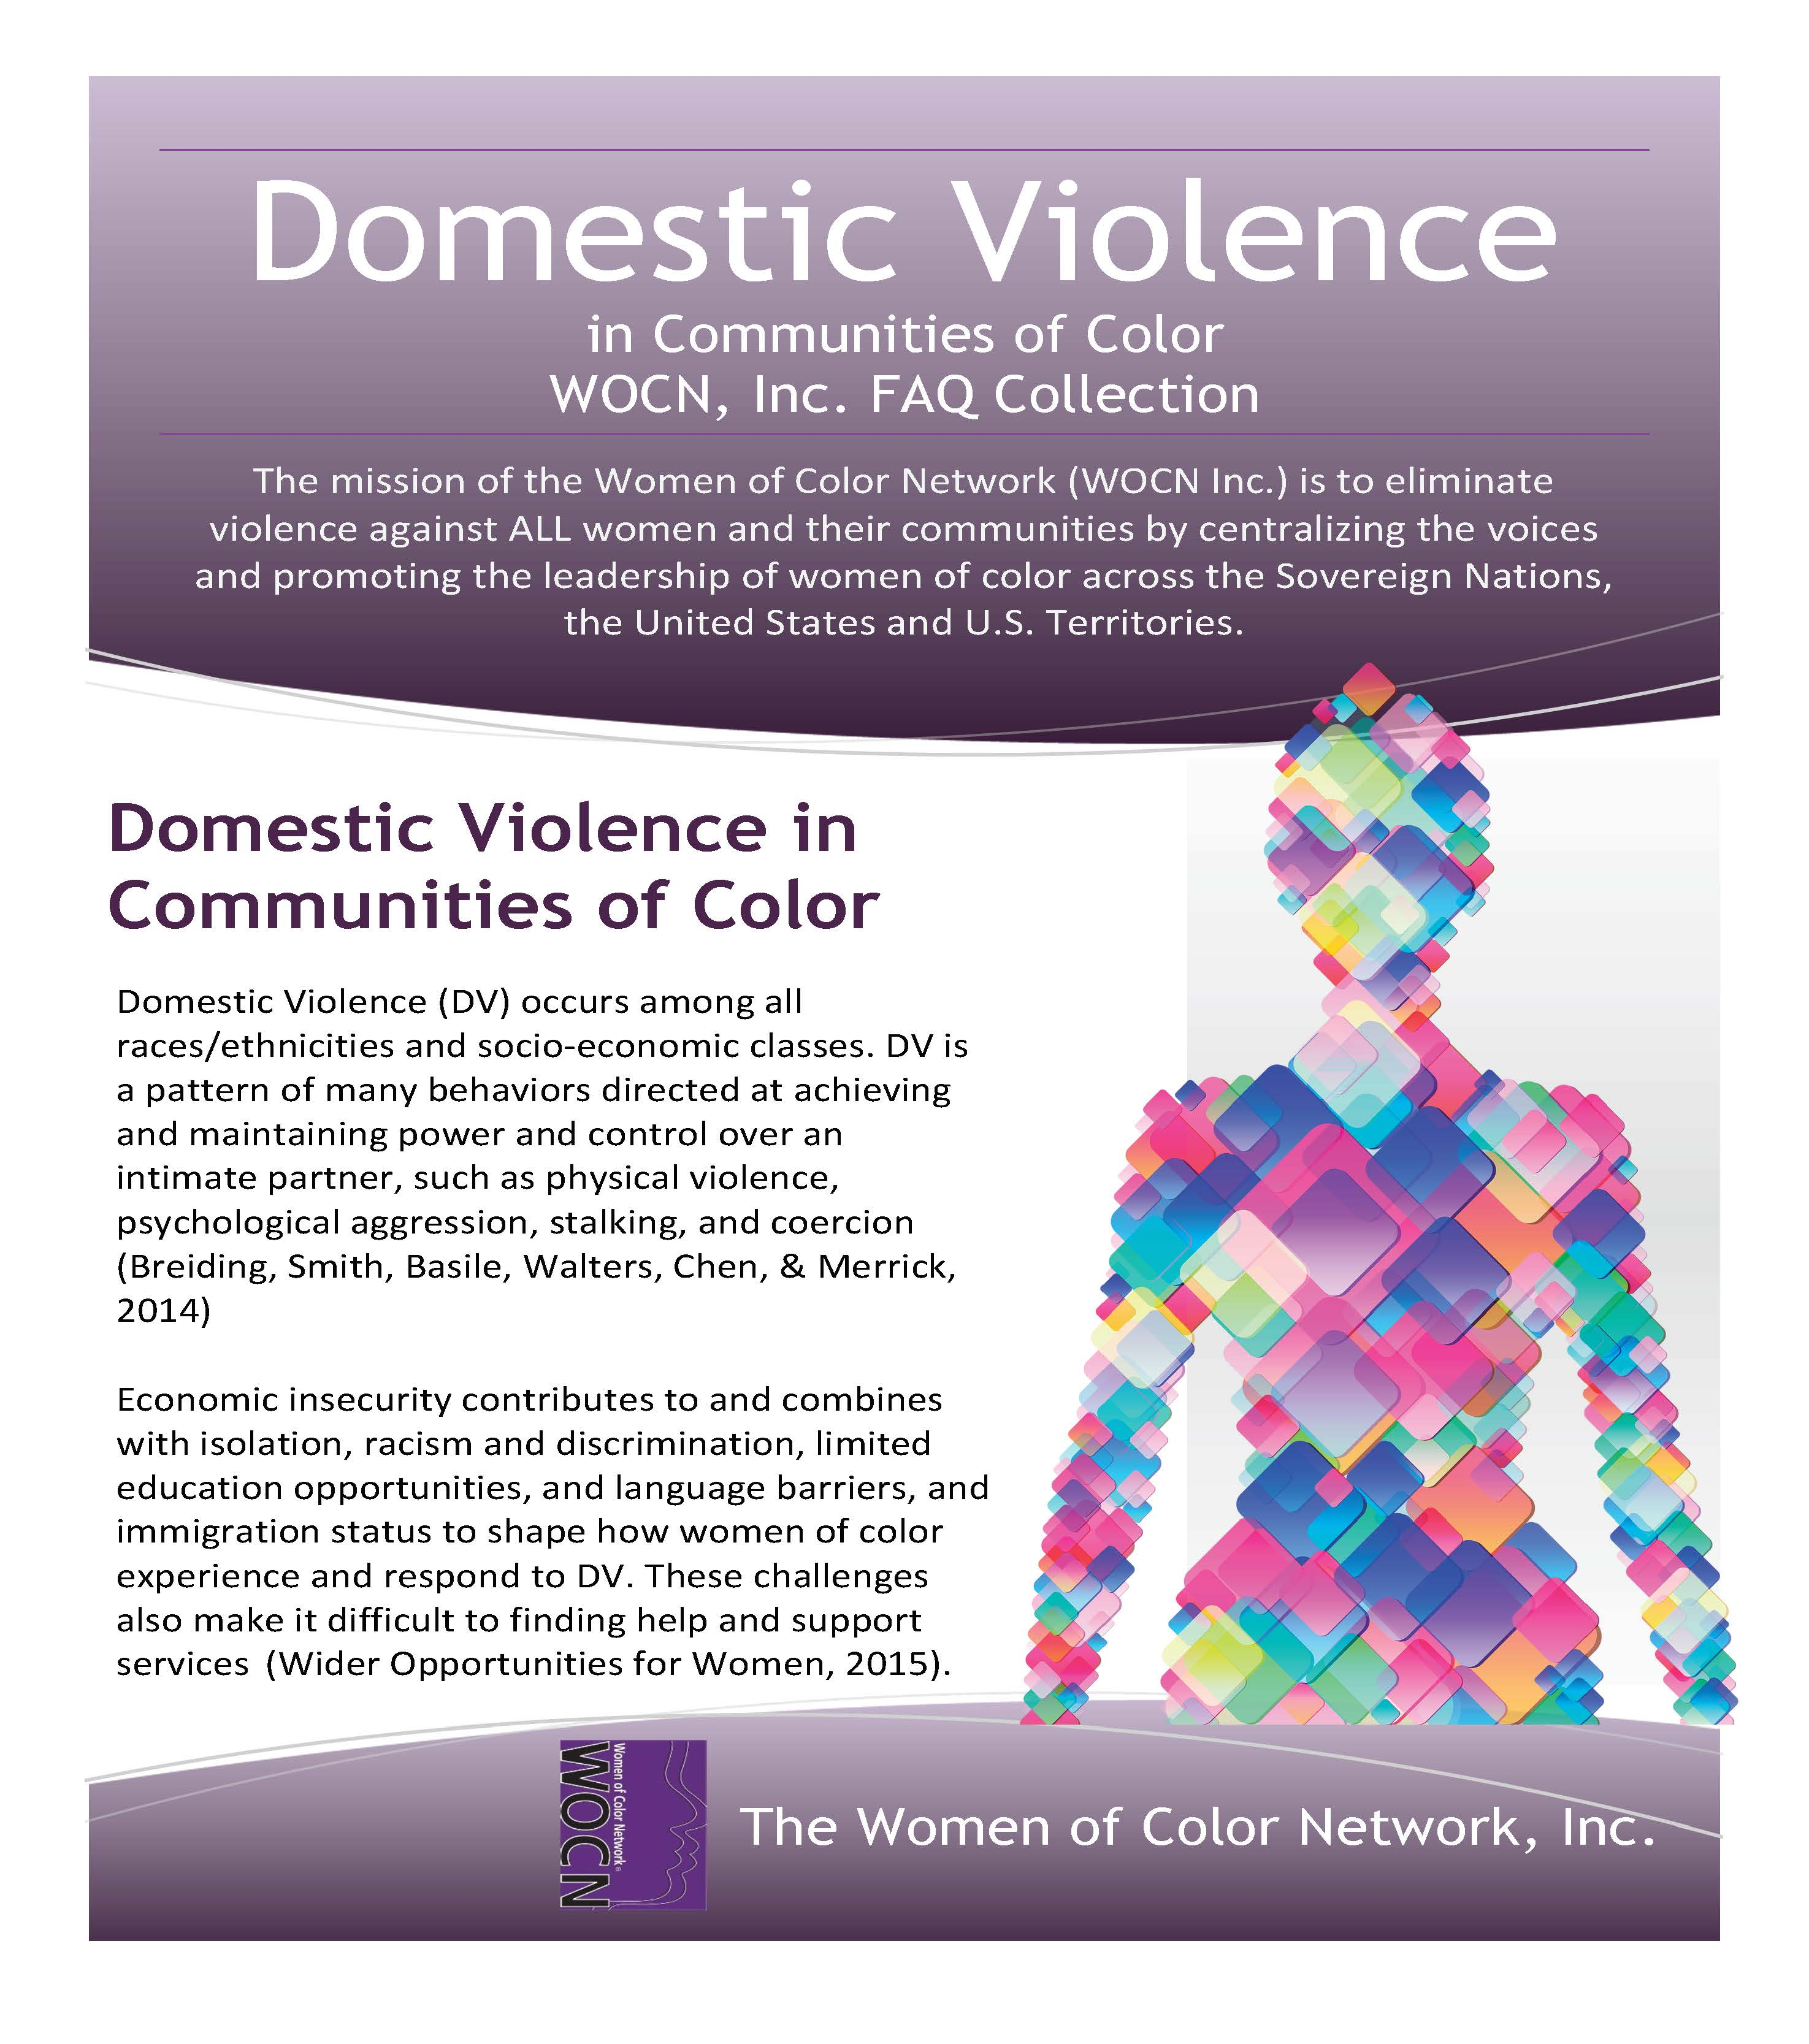 Domestic Violence FAQS